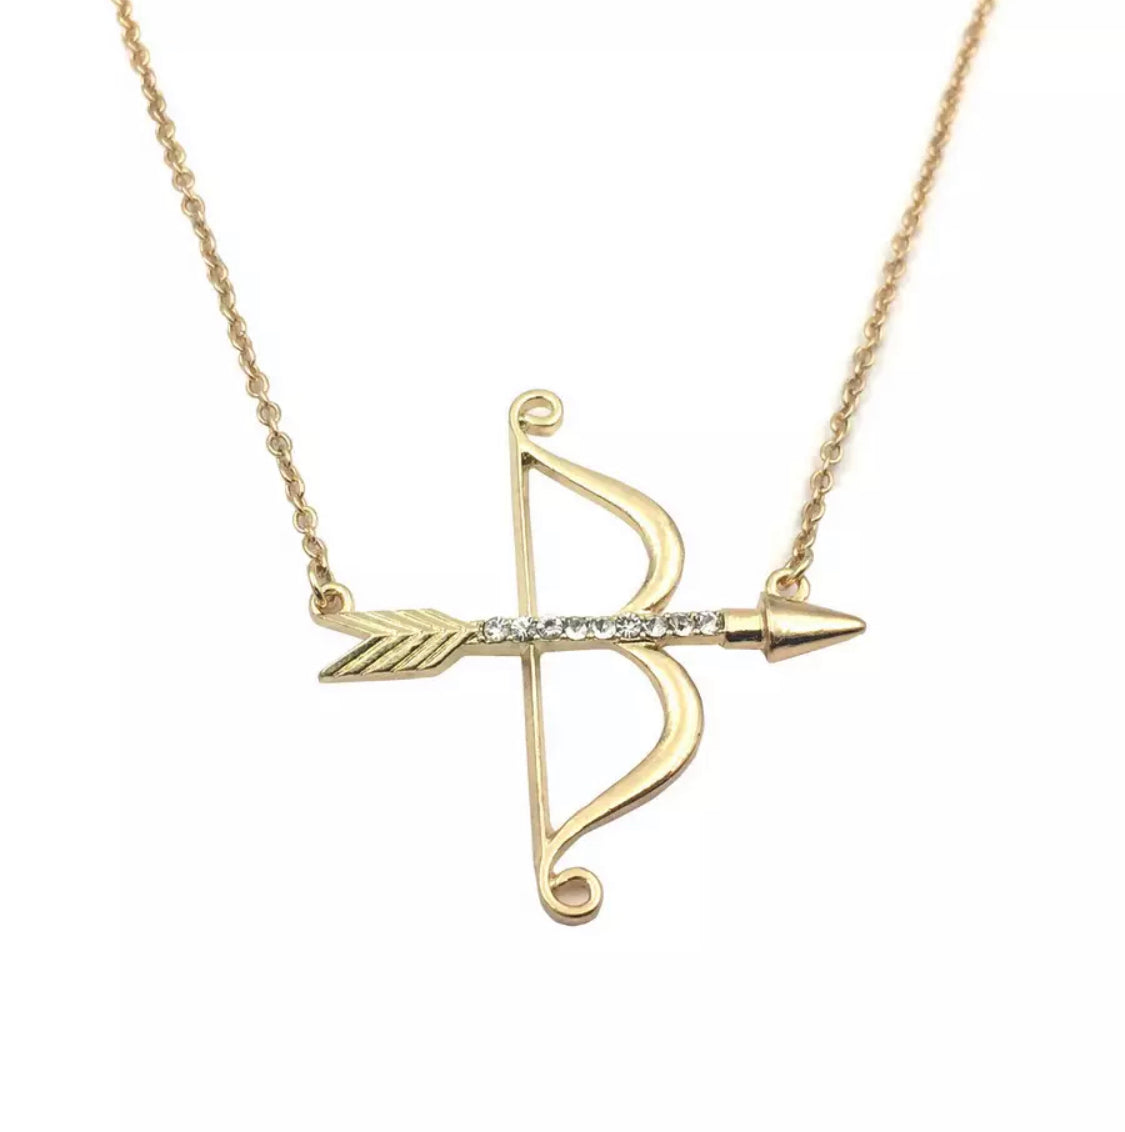 Bow and Arrow Gold Necklace Bow and Arrow Necklace Bullseye Necklace